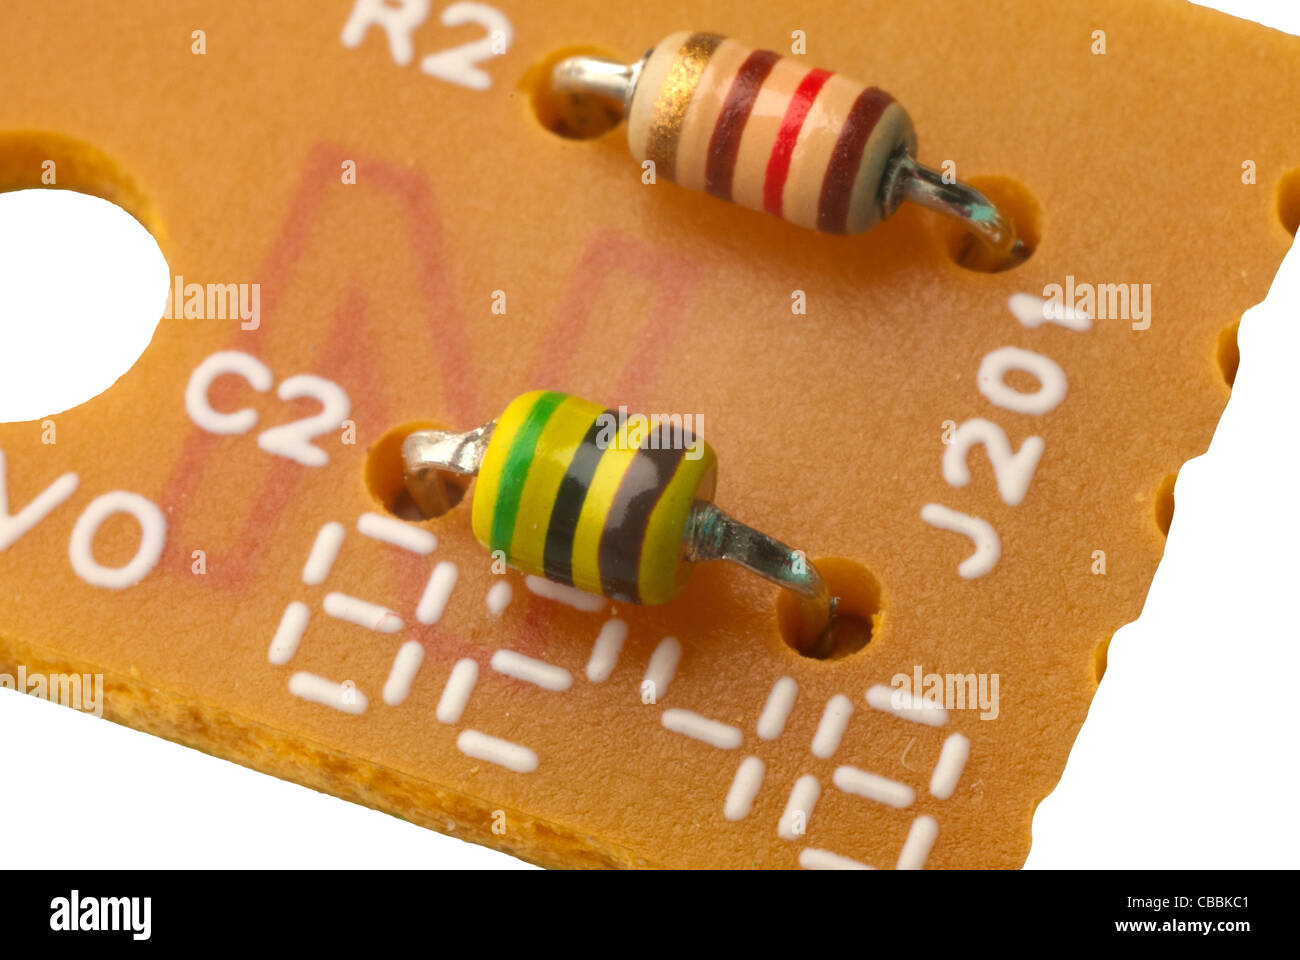 card chip circuit closeup color colorful component components computer connection decoration design digital electric - Stock Image